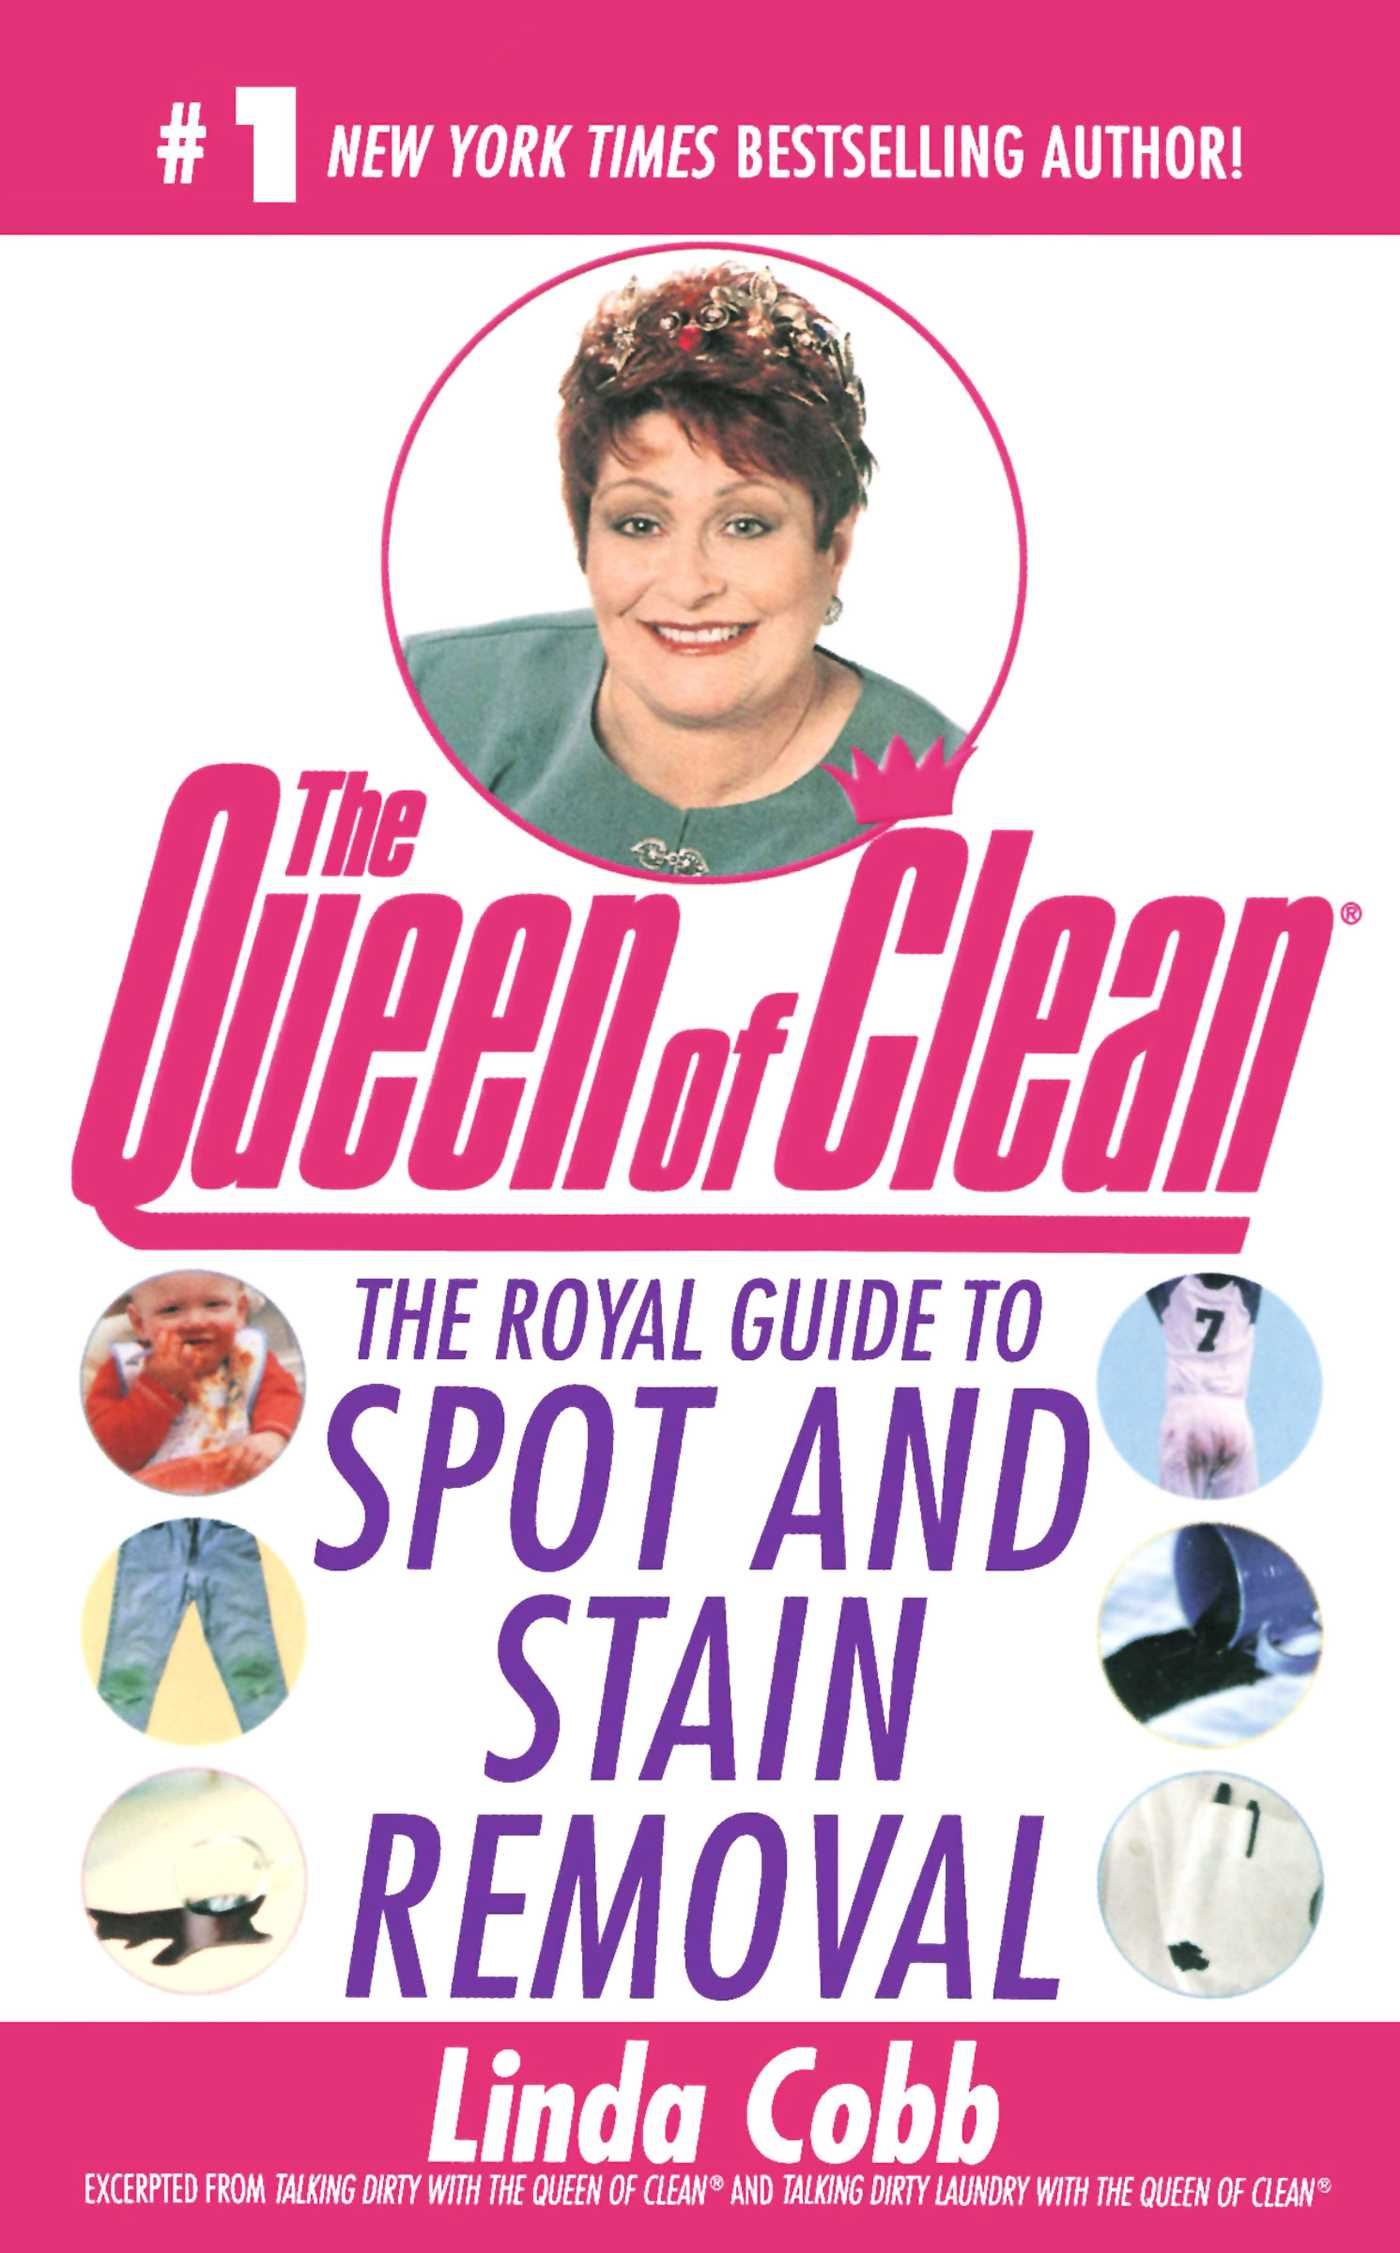 The royal guide to spot and stain removal 9781451604153 hr